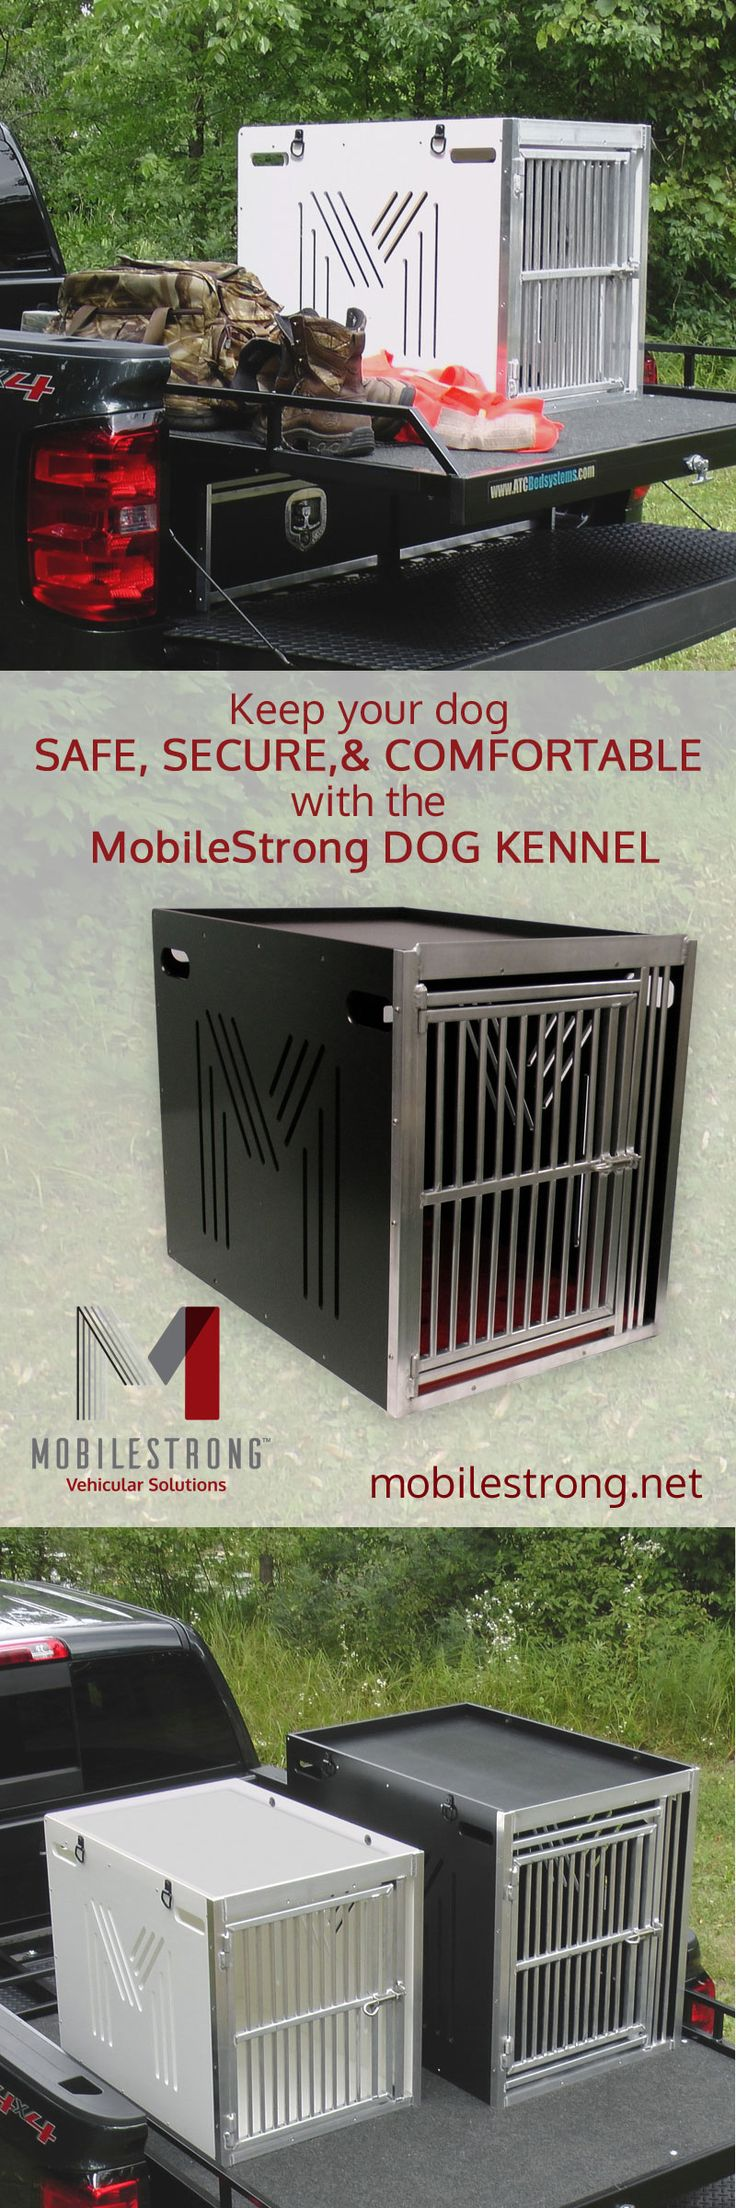 New Heavy Duty Dog Kennel by #mobilestrong keeps your dog Safe, Secure & Comfortable!